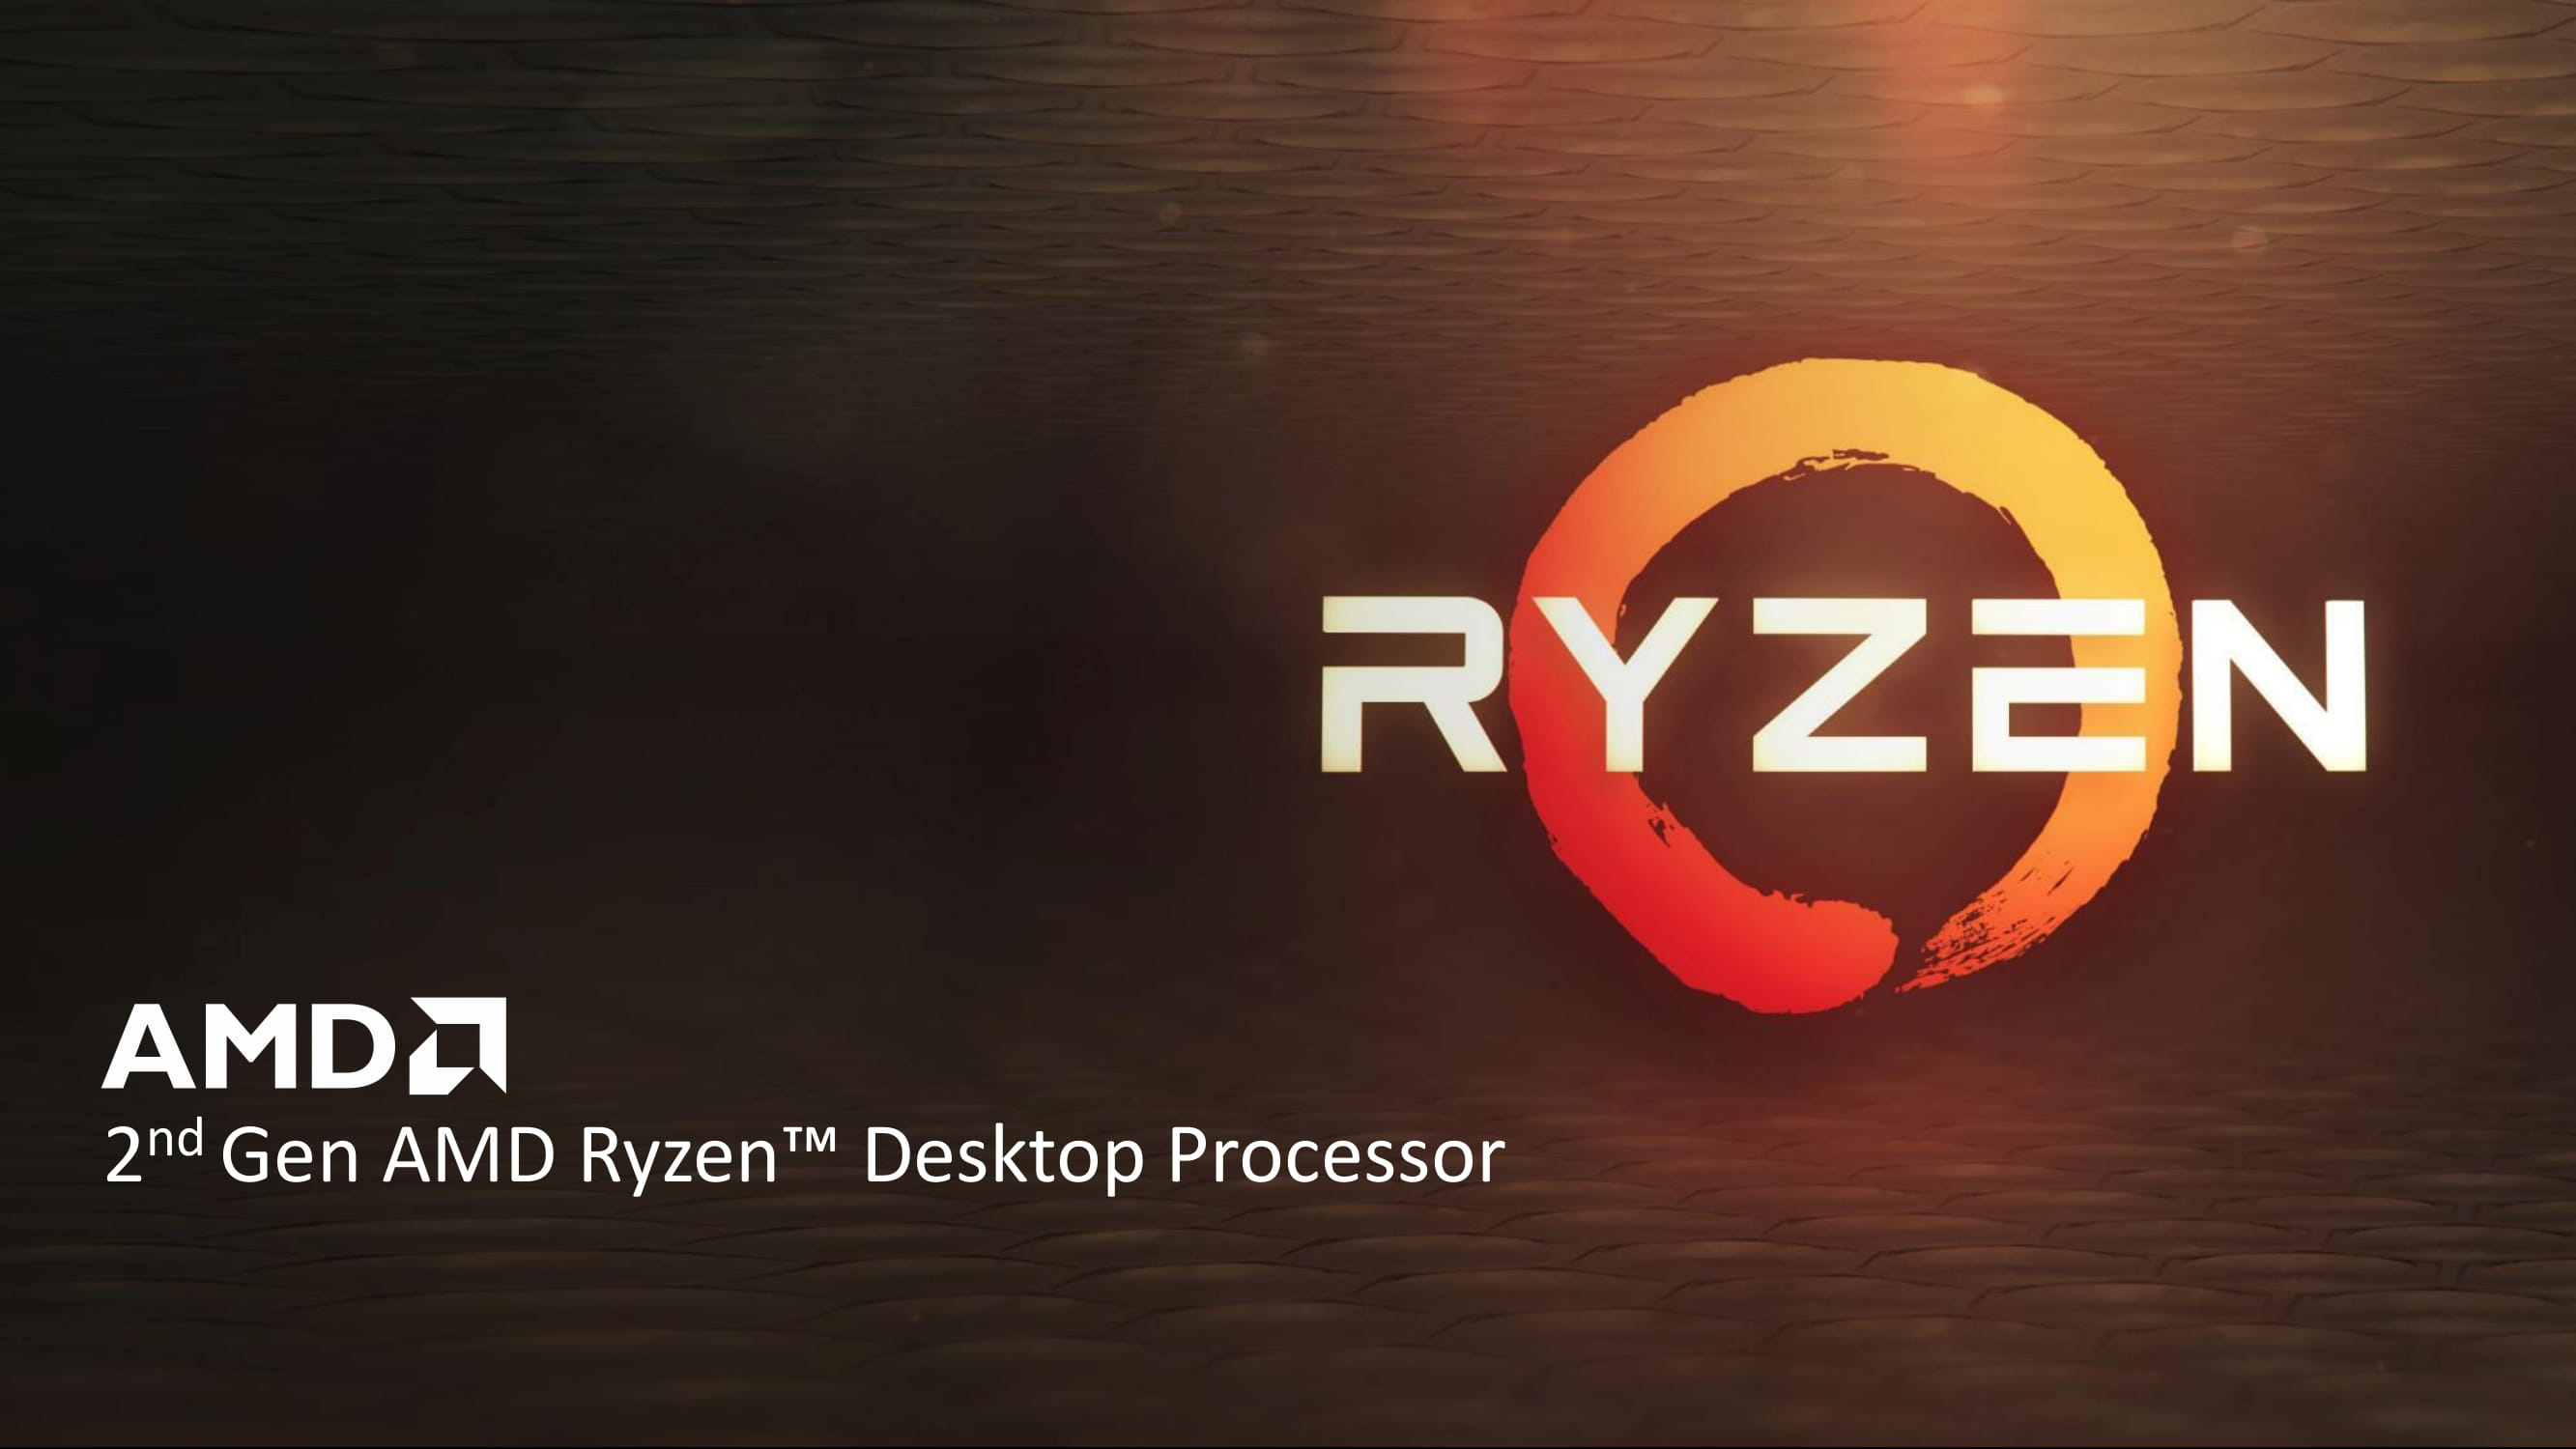 2nd Gen AMD Ryzen Desktop Processor-2-02.jpg